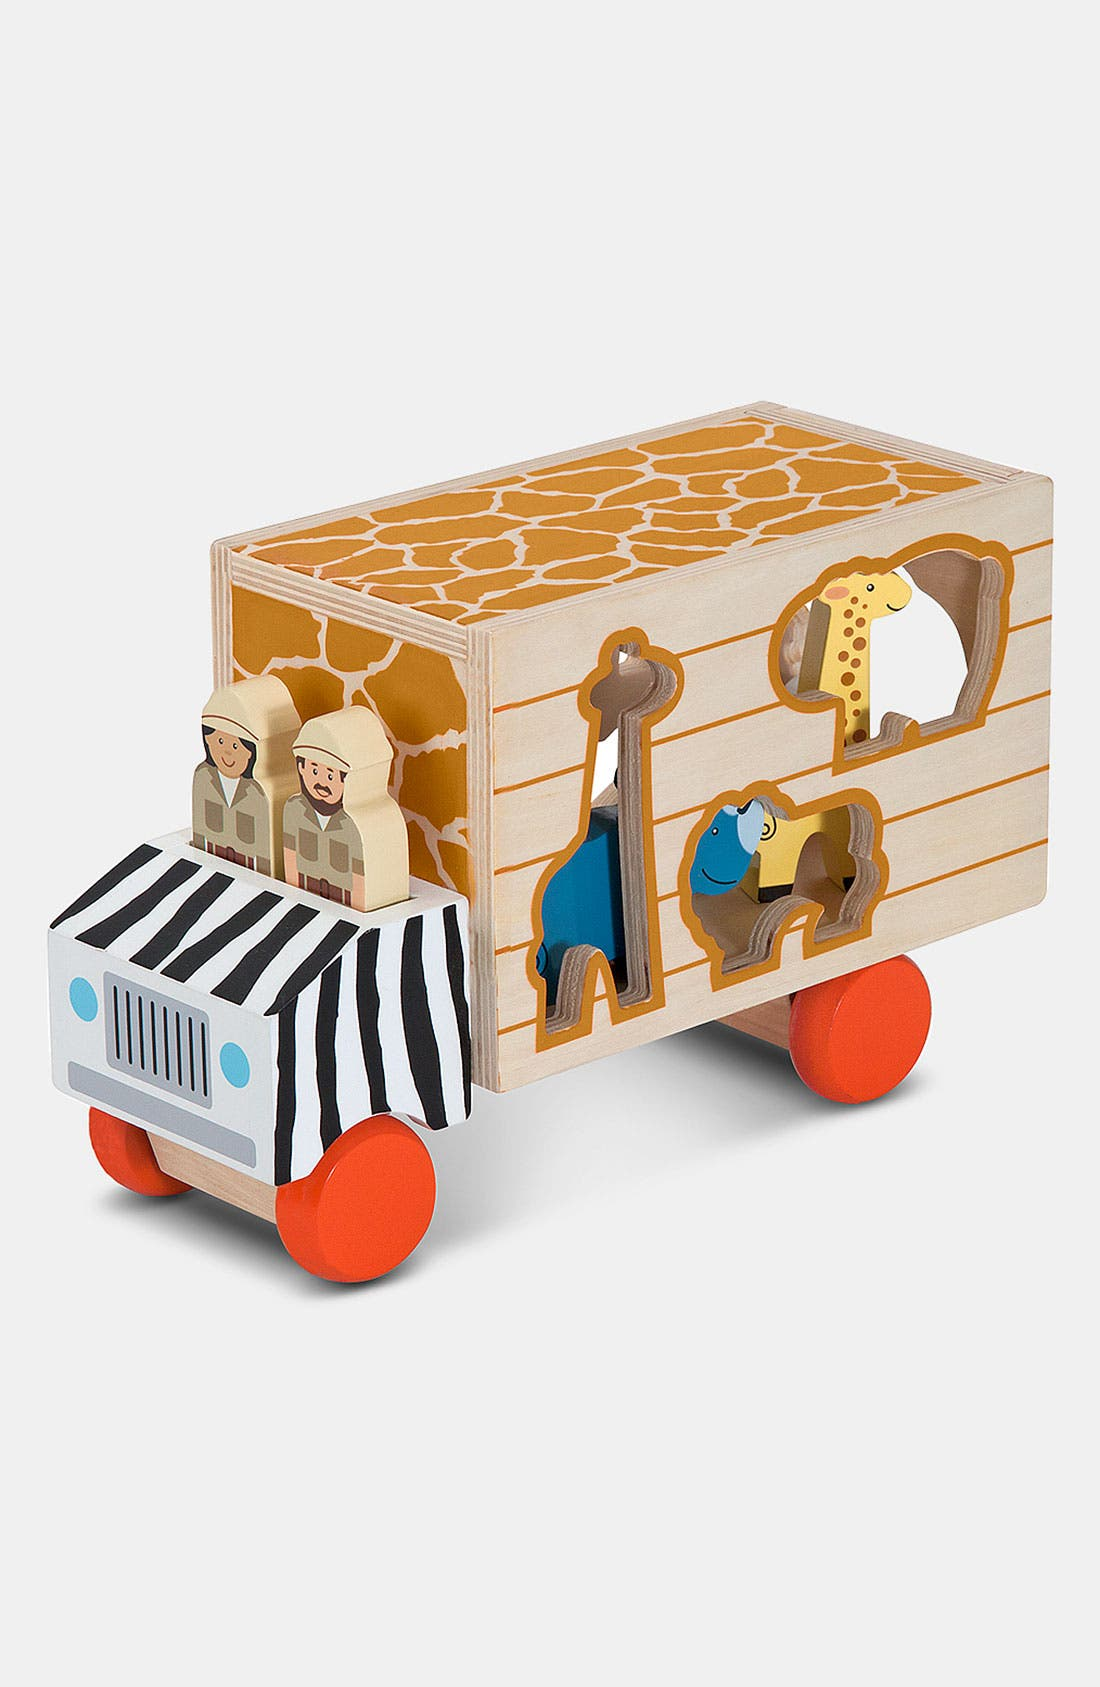 Melissa & Doug 'Animal Rescue' Shape Sorting Wooden Truck Toy